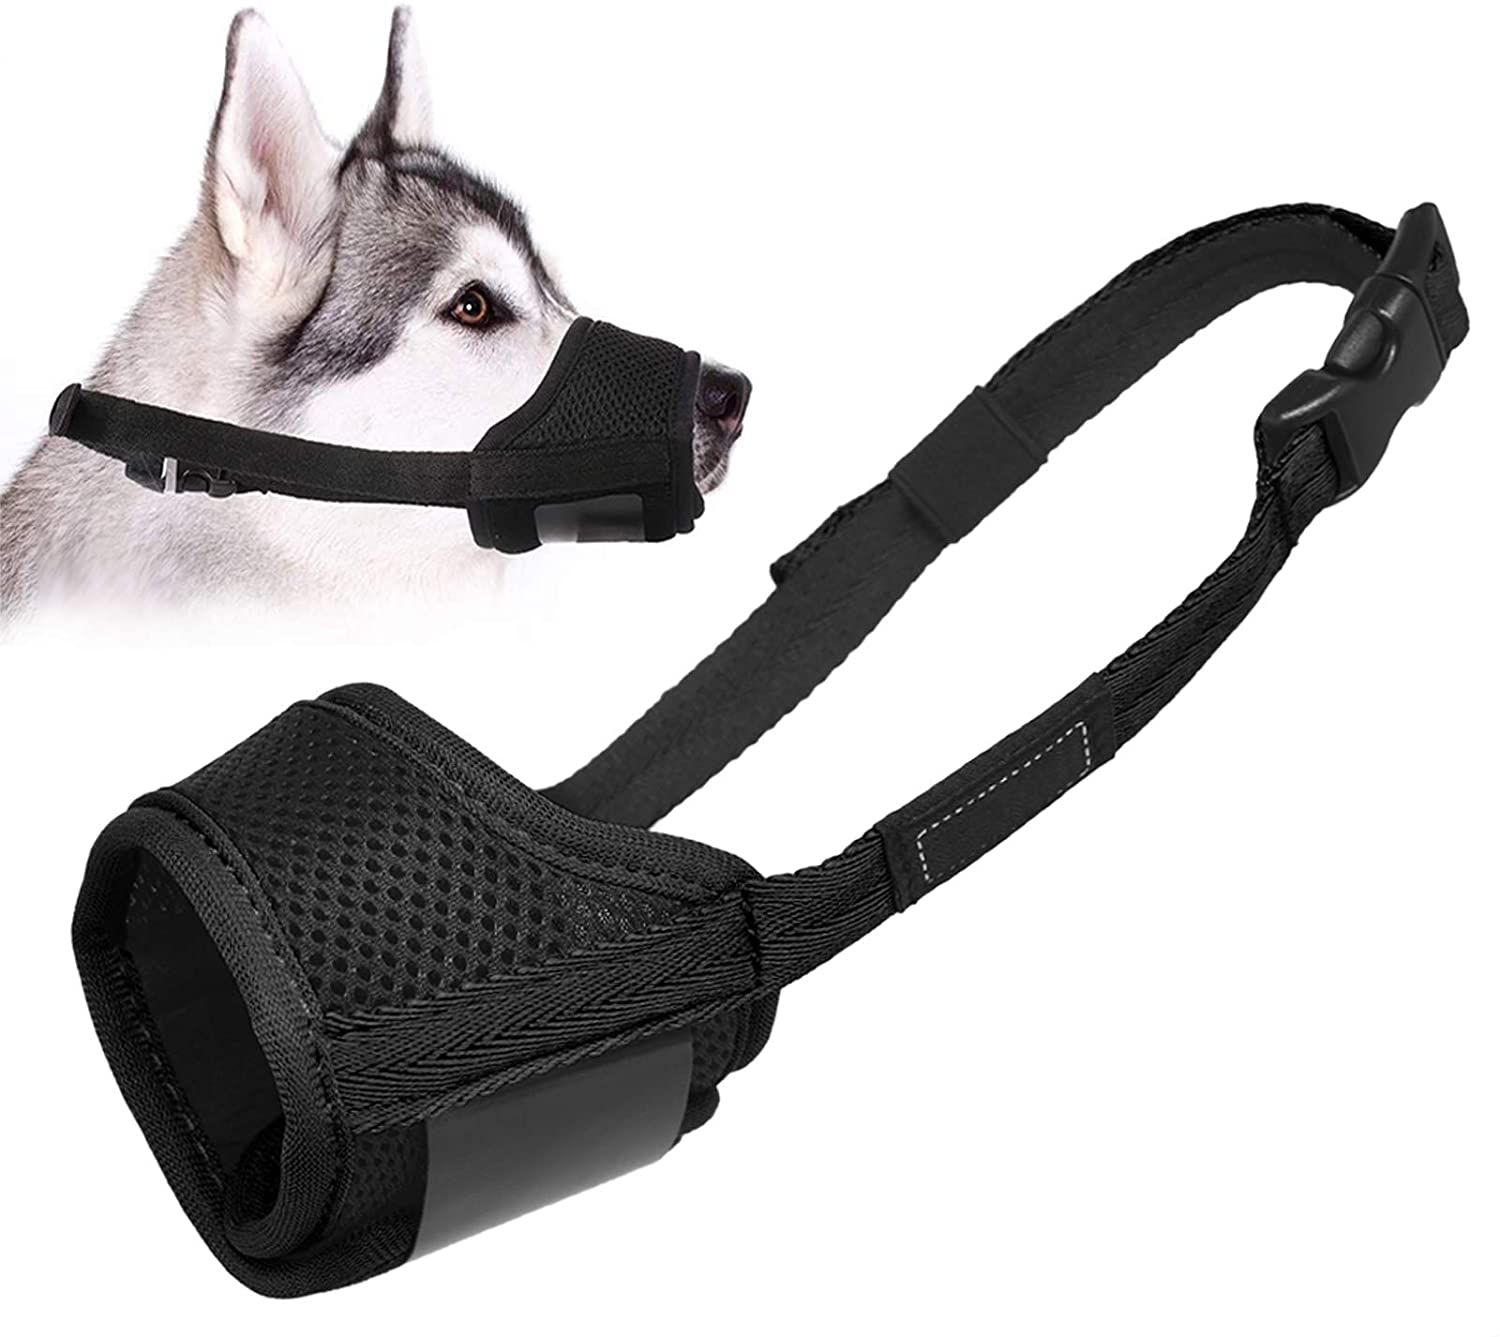 LUCKYPAW Dog Muzzle Anti Biting Barking and Chewing, with Comfortable Mesh Soft Fabric and Adjustable Strap, Suitable for Small, Medium and Large Dogs